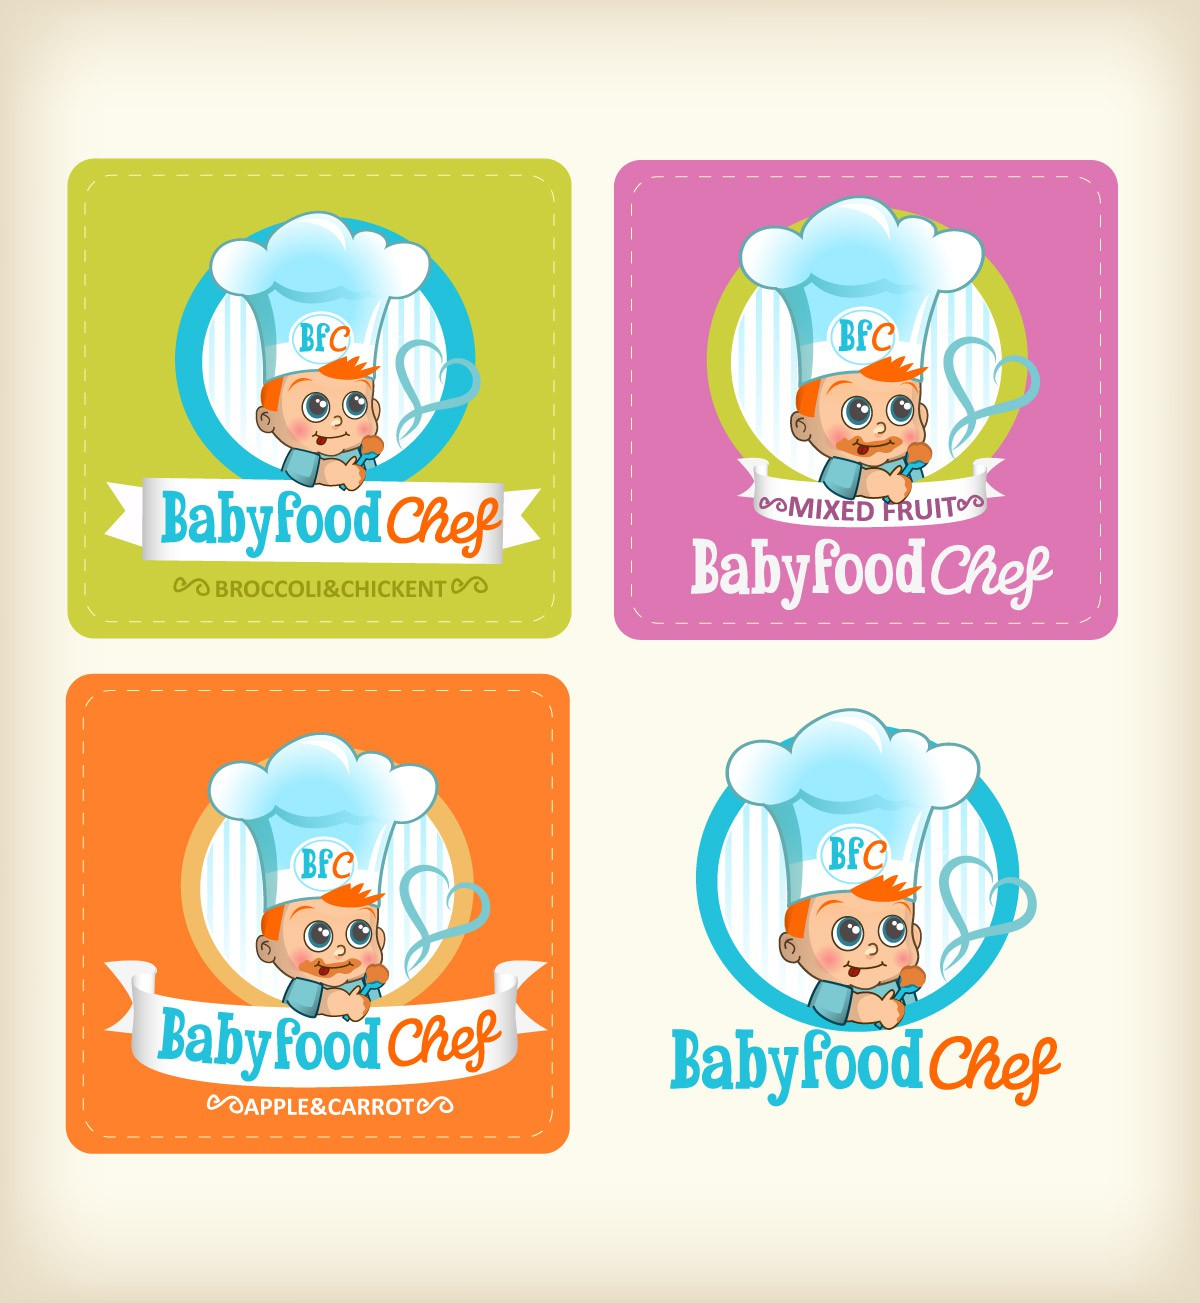 Help Babyfoodchef with a new logo